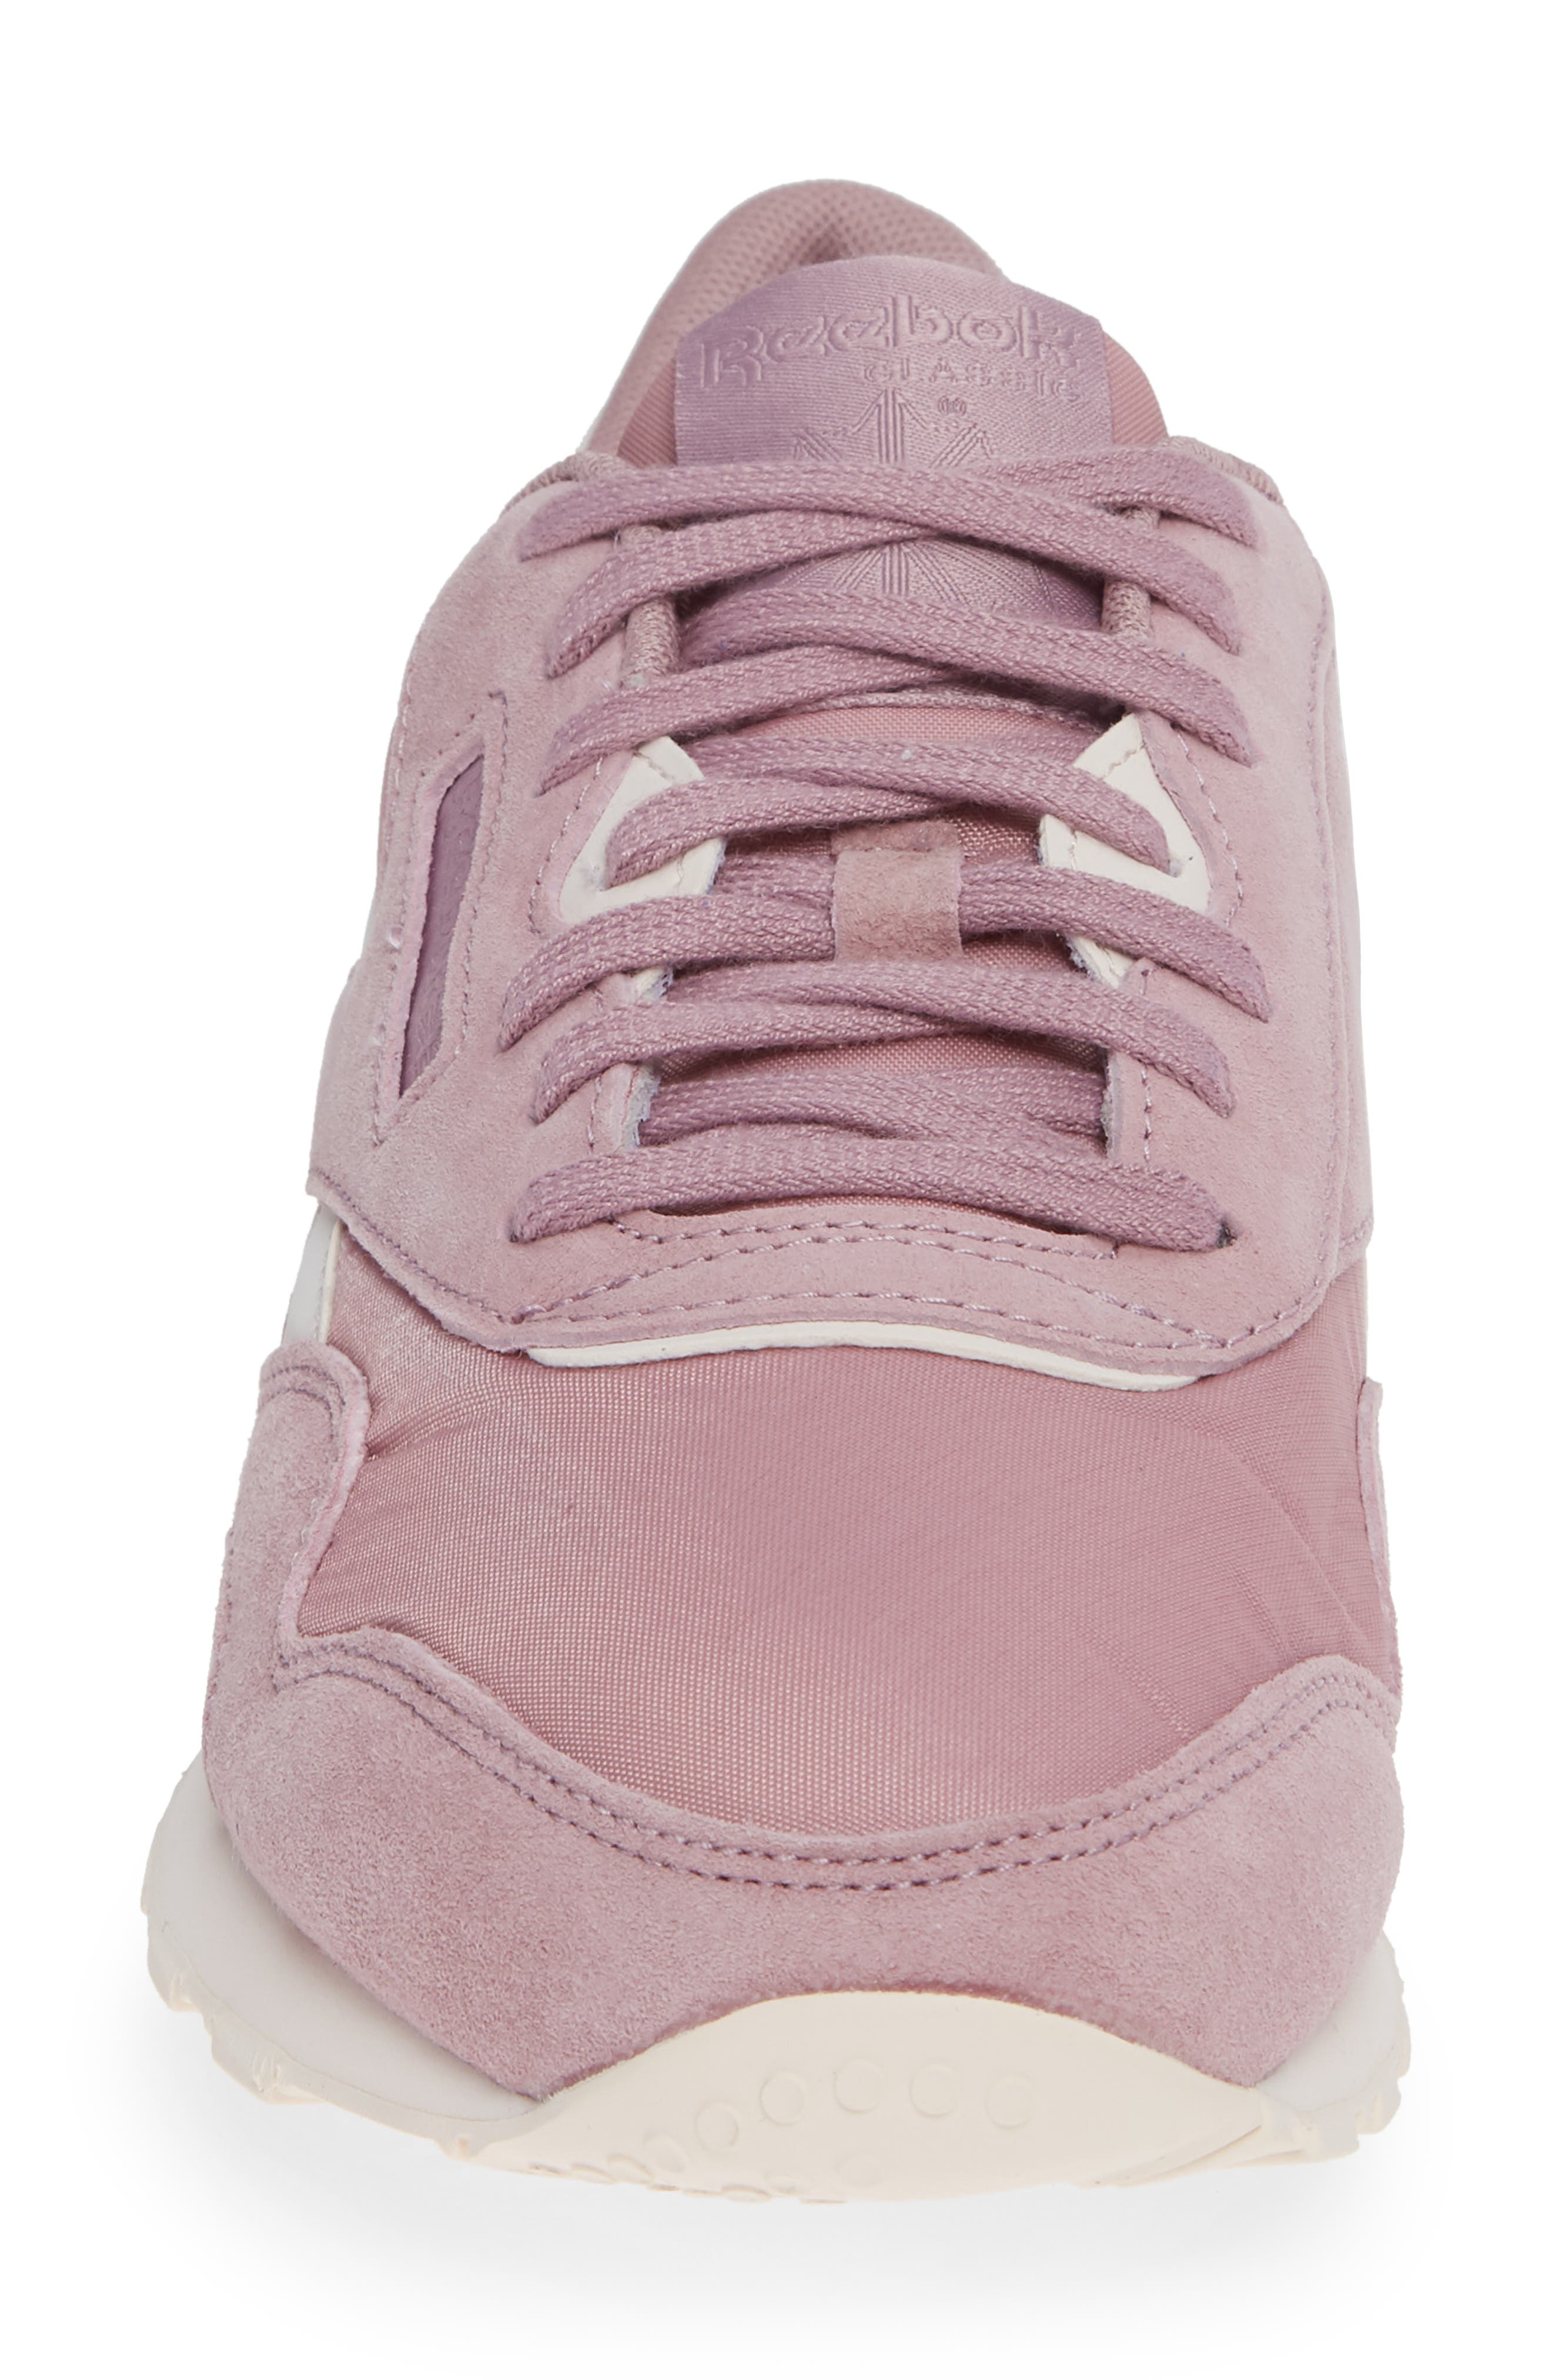 Classic Sneaker,                             Alternate thumbnail 4, color,                             INFUSED LILAC/ PALE PINK